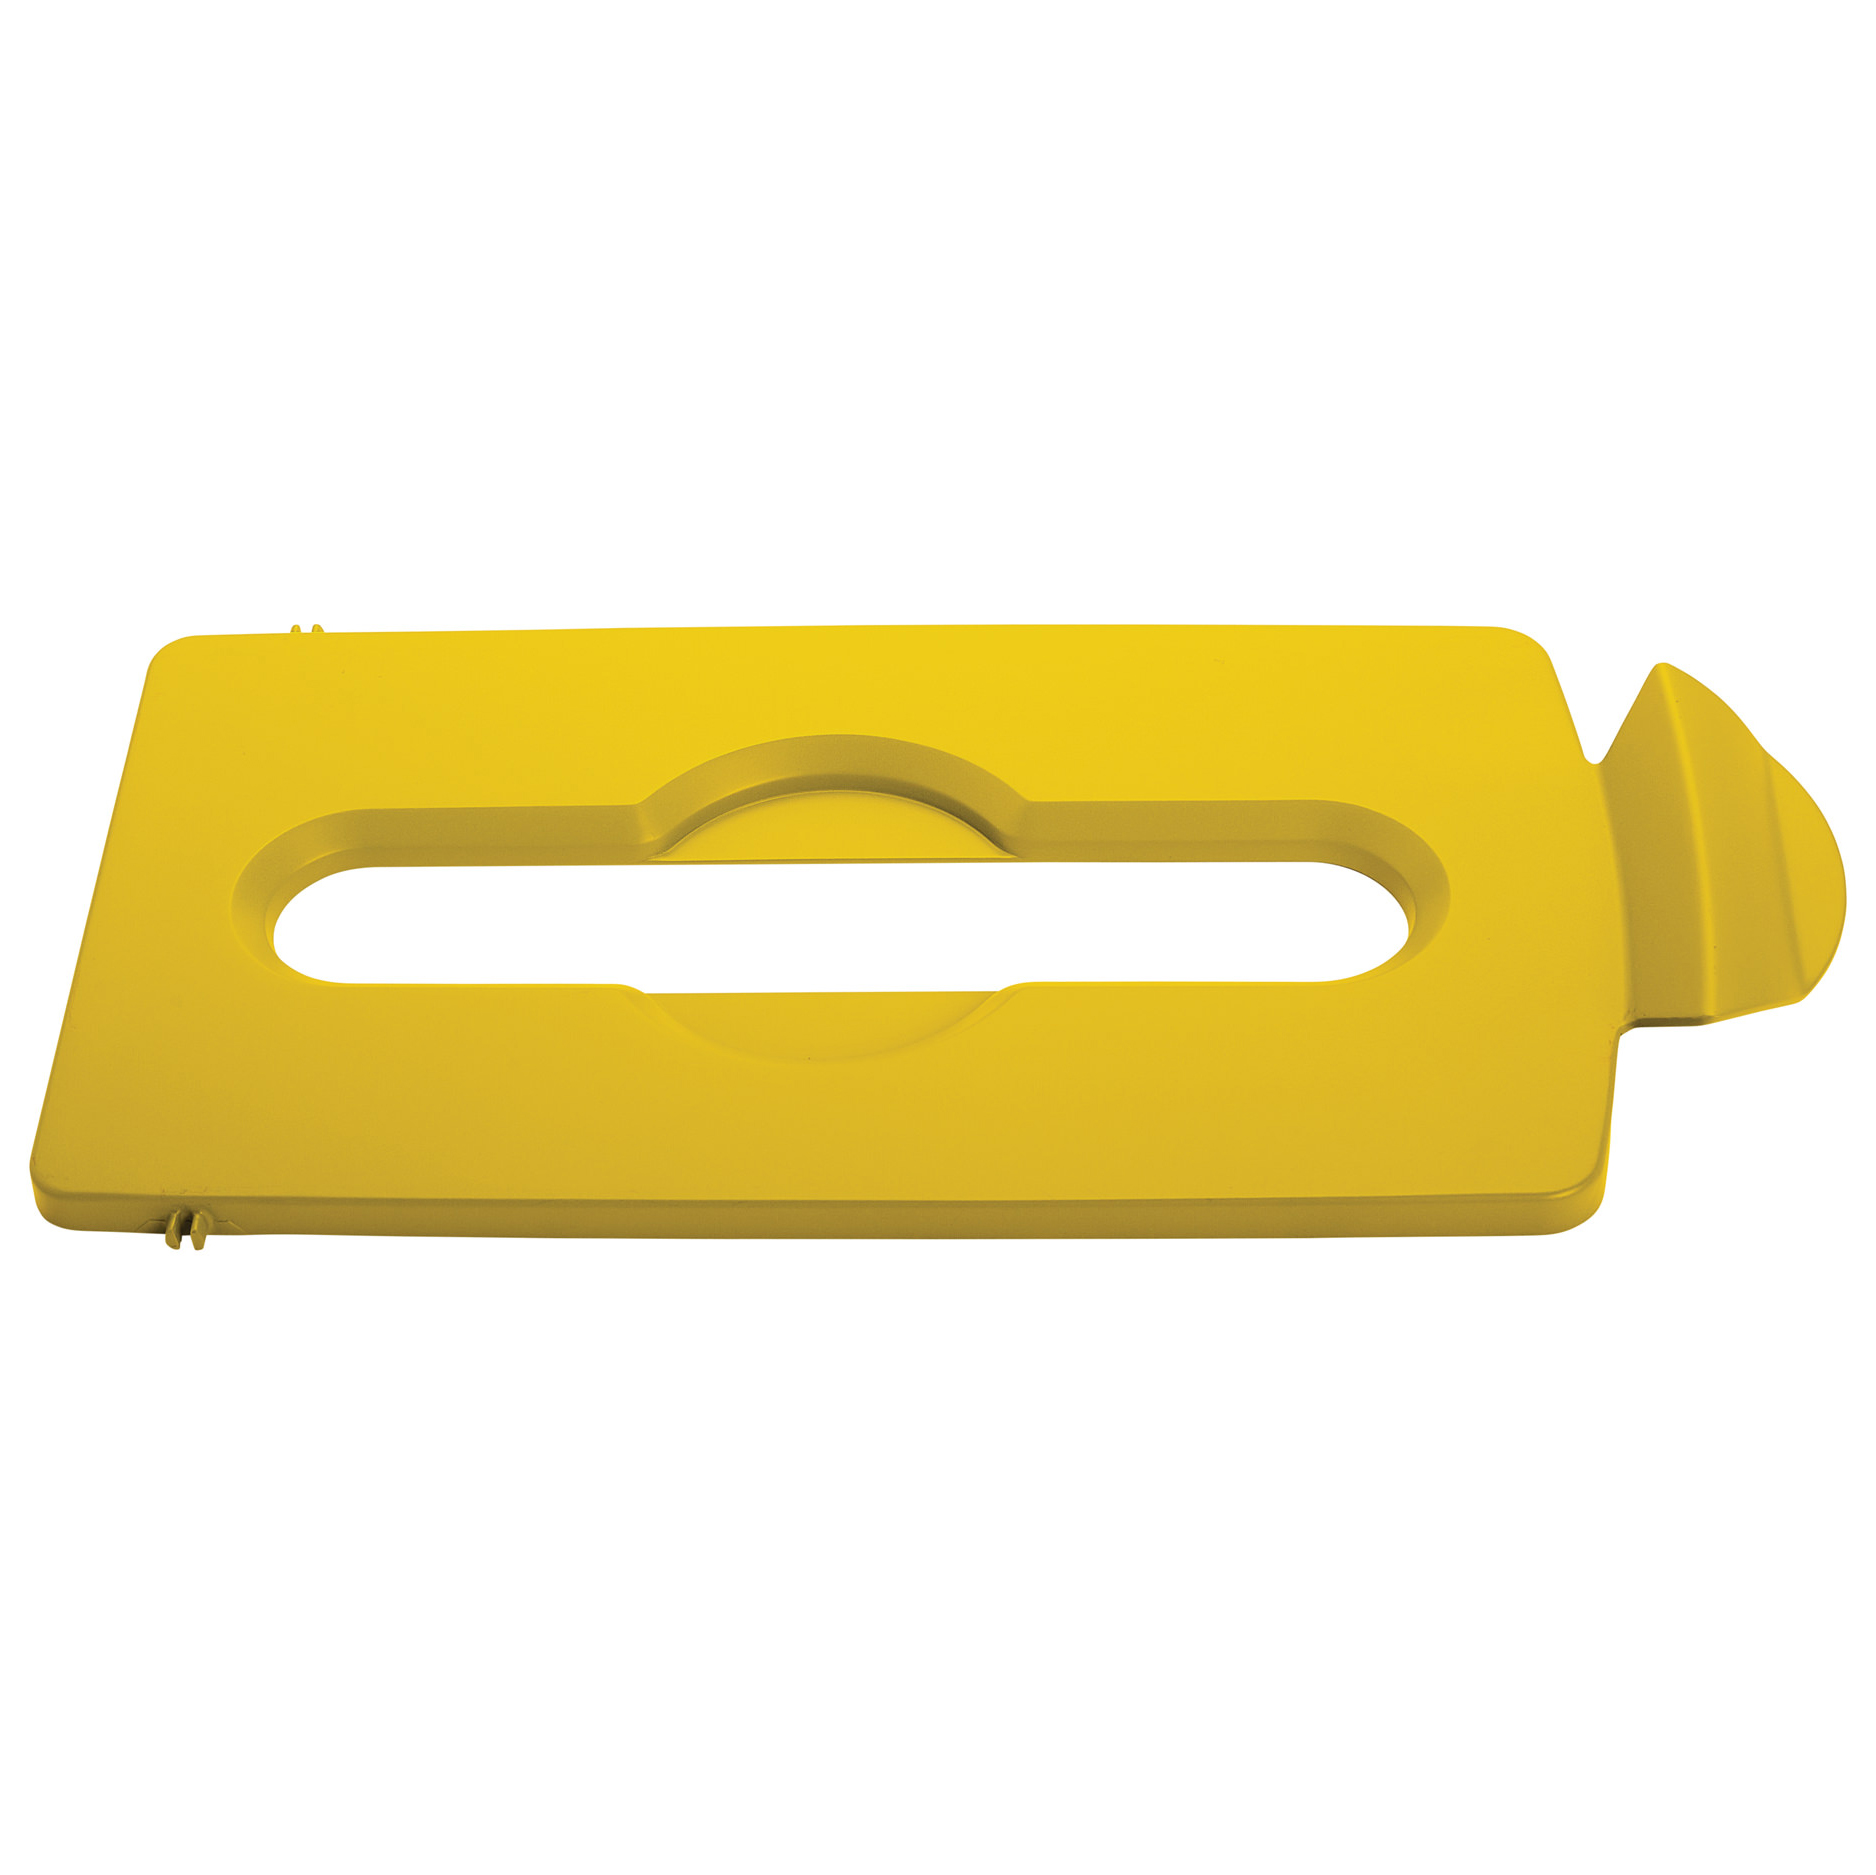 Rubbermaid Commercial Products 2007882 trash receptacle lid / top